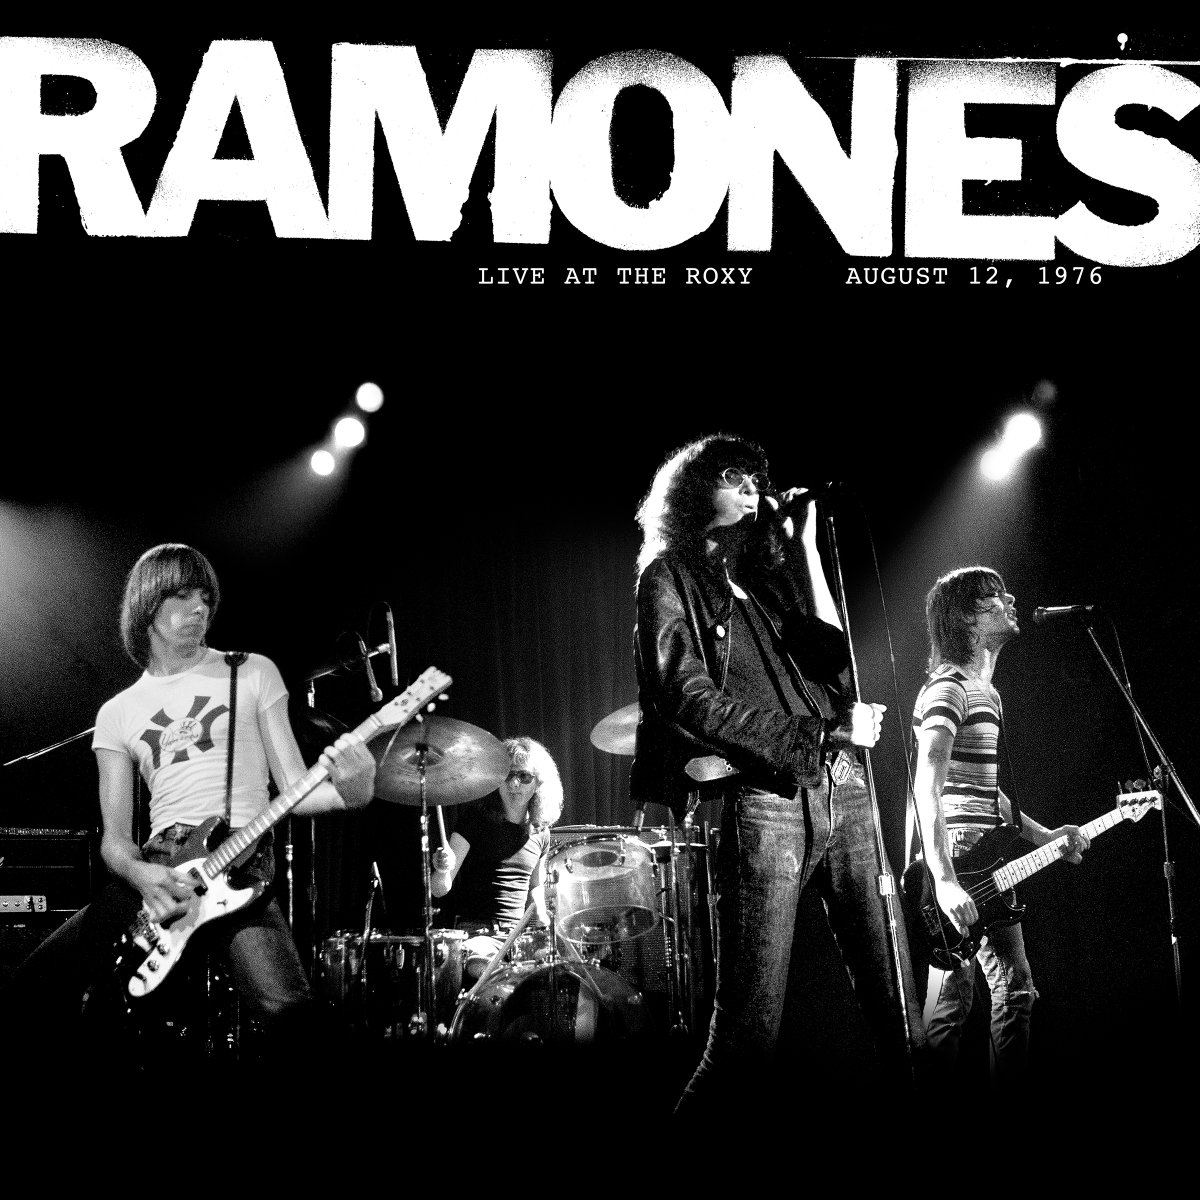 The Ramones | Live At the Roxy (August 12, 1976)